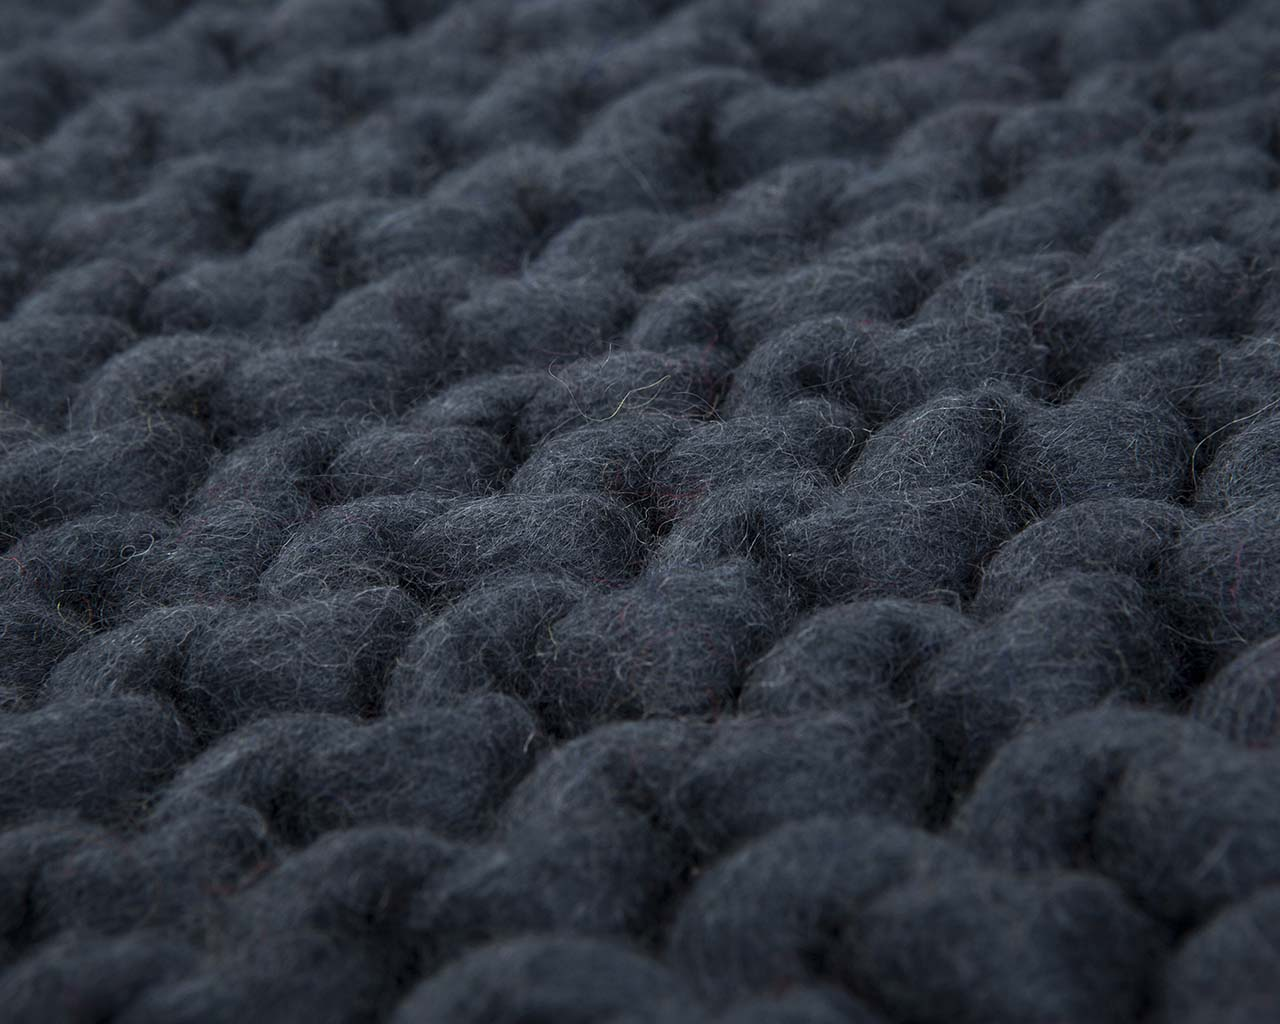 gray soft woolen area rugs for sale